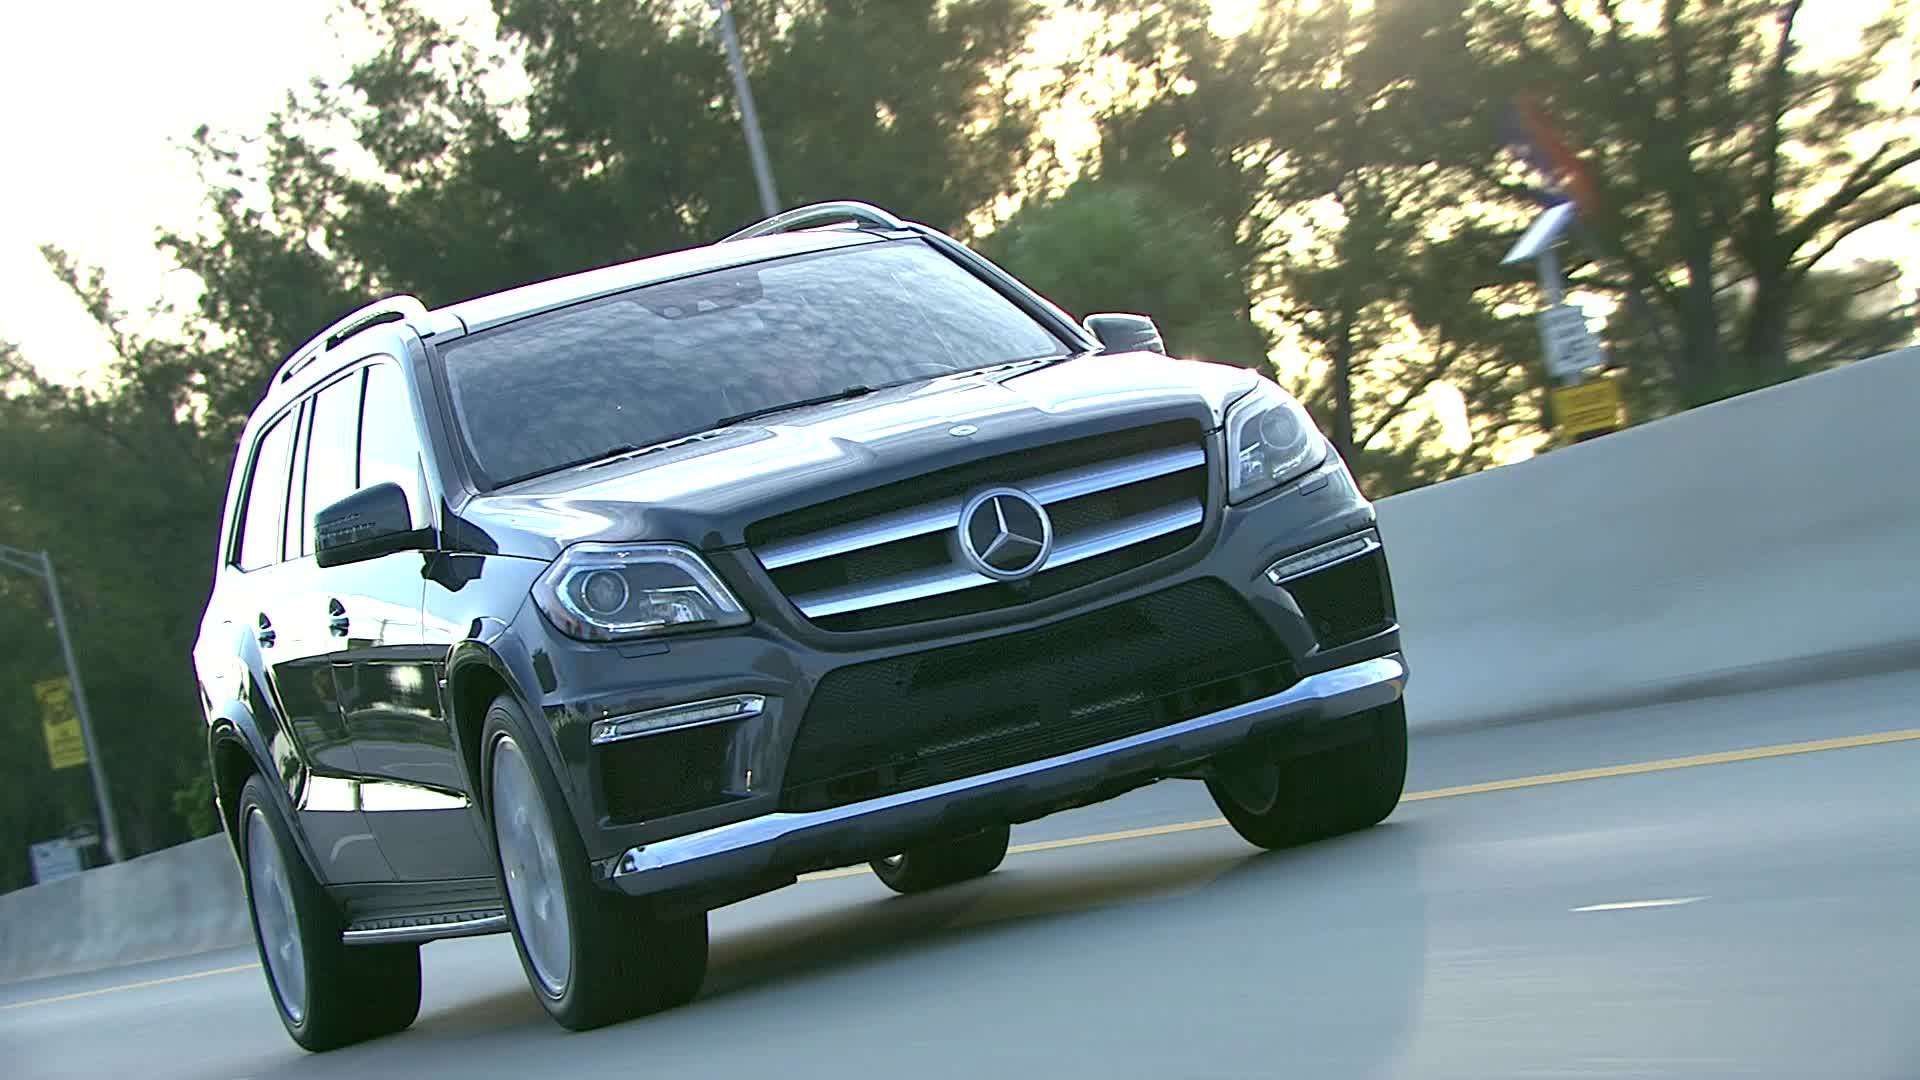 2013 Mercedes-Benz GL550 - Running Footage